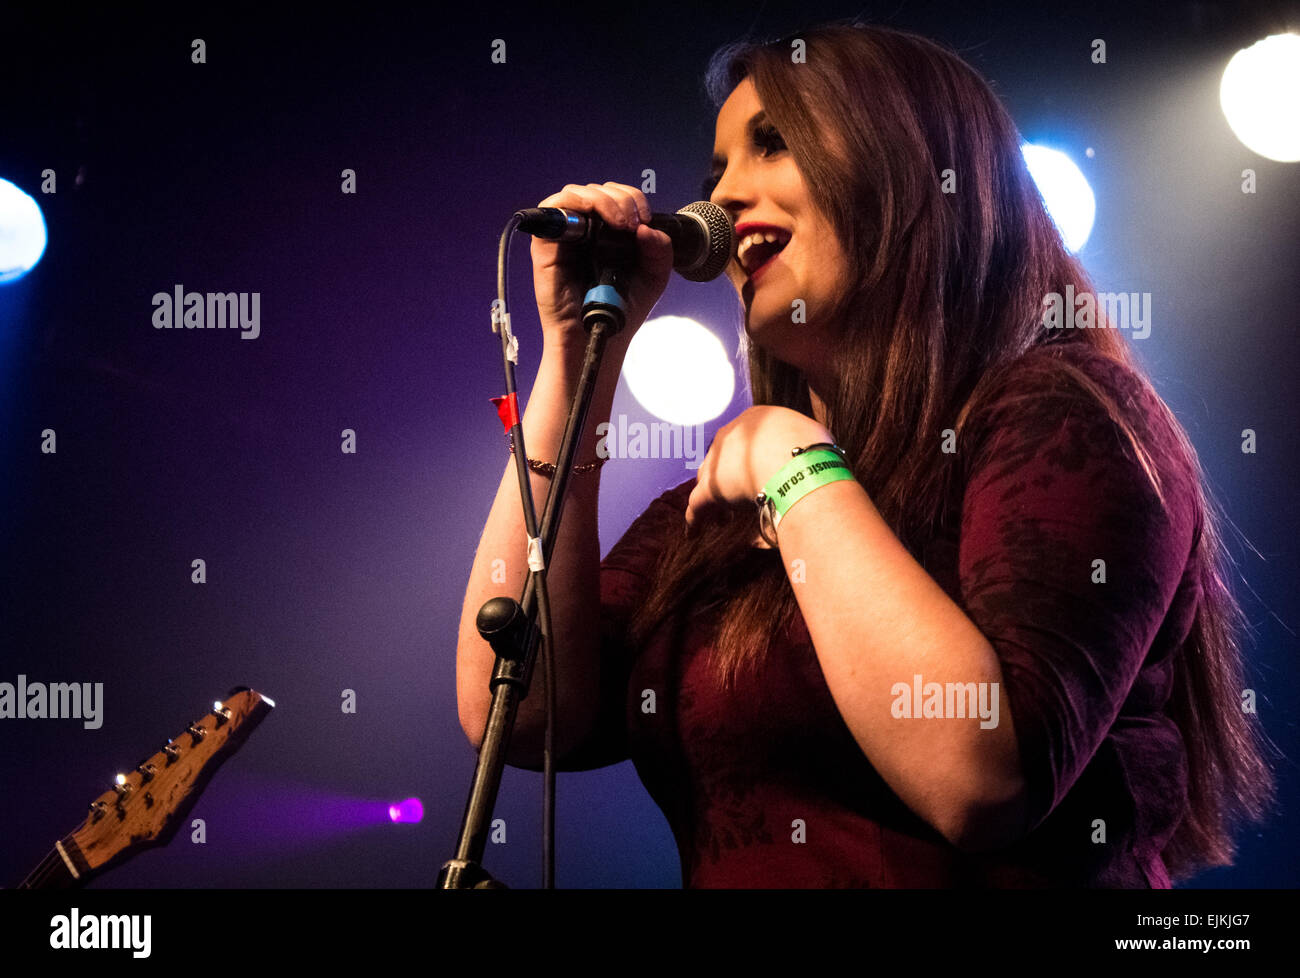 Female singer singing in a band at Wedgewood Rooms, Portsmouth, UK. - Stock Image